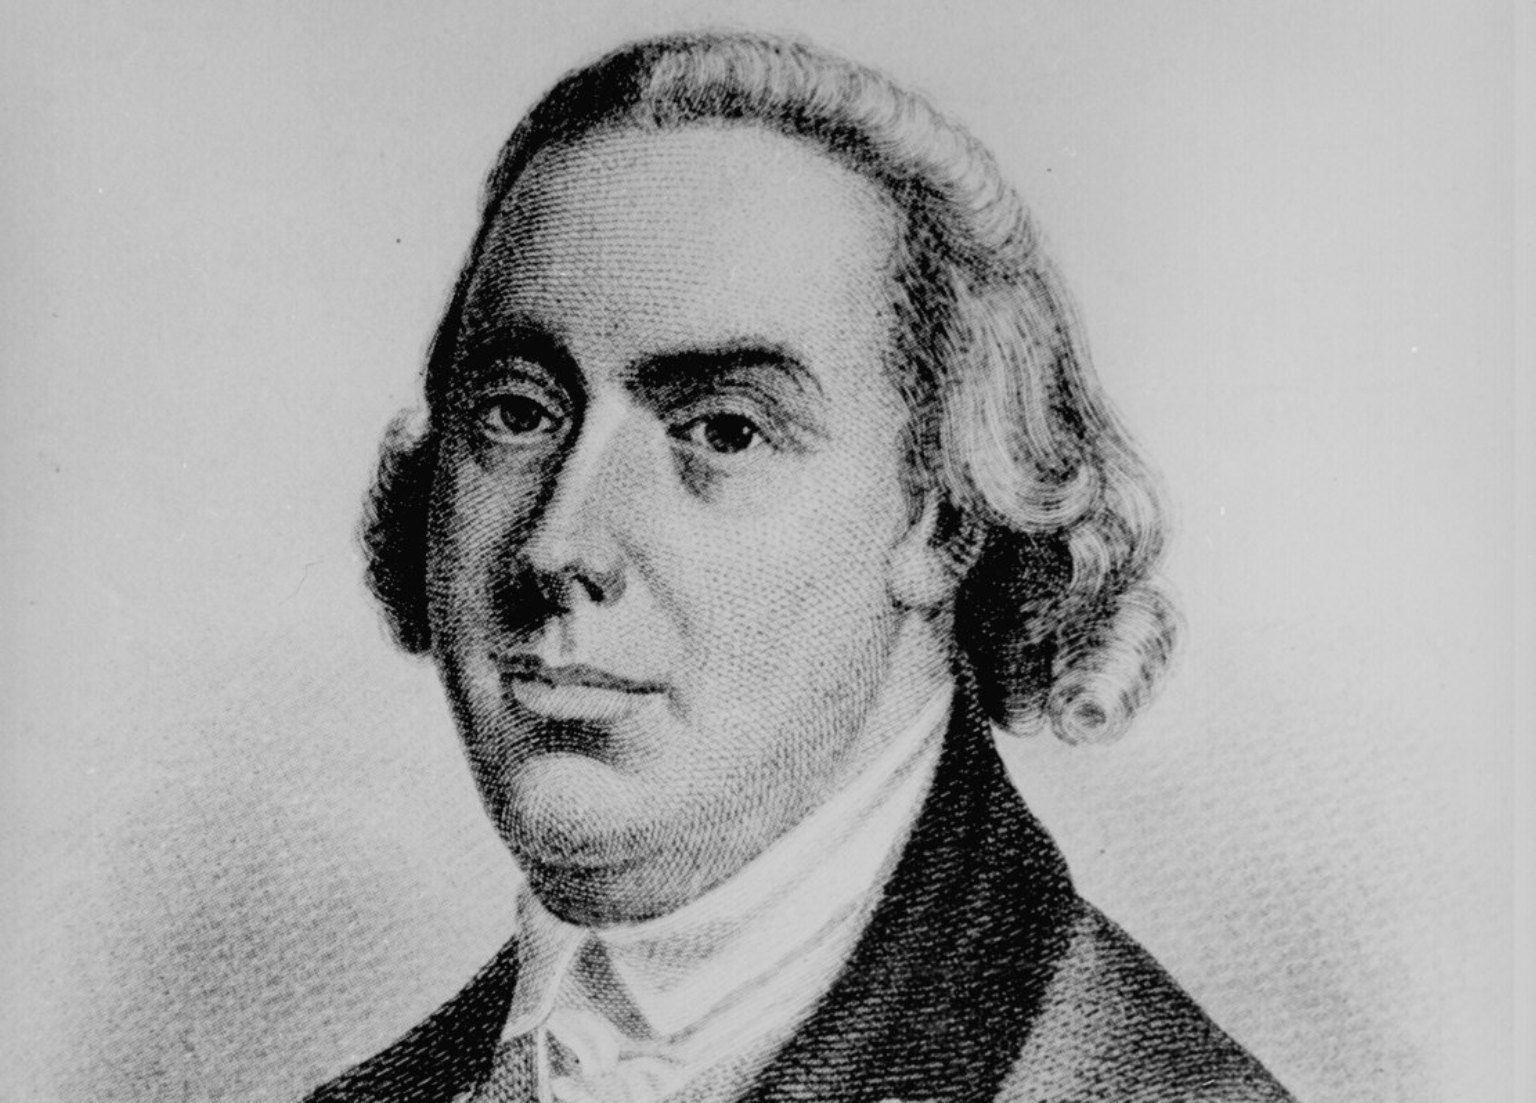 general thomas gage biography Thomas gage's biography view biography of thomas gage with birthdate, birthplace, birthname and height at famous biography.